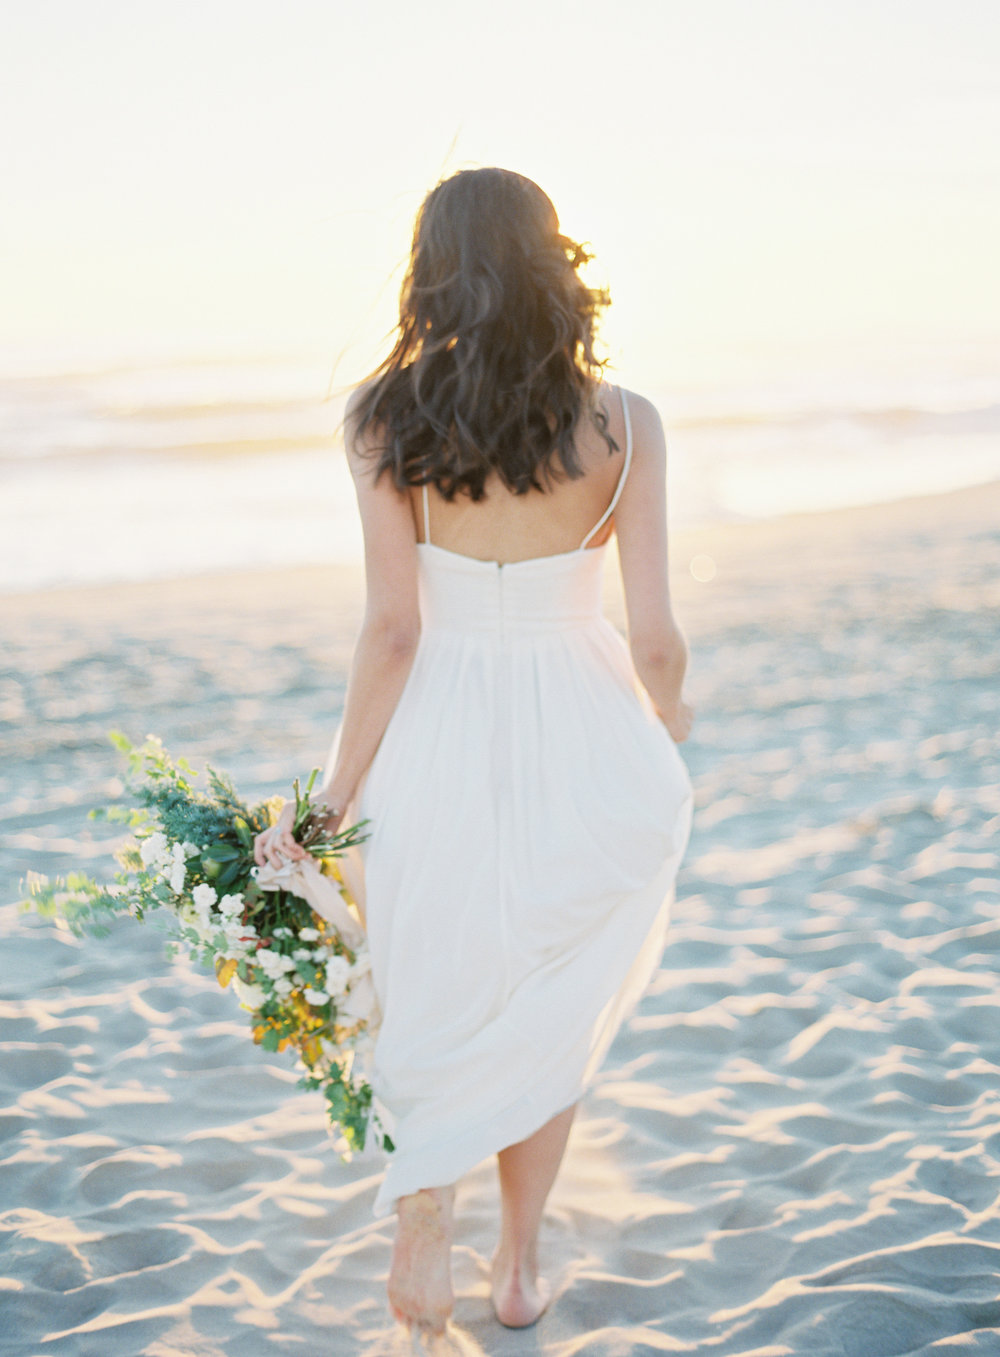 pirouettepaper.com | Savan Photography | Beach Wedding | Pirouette Paper Company | Wedding Calligraphy and Invitations  |  Written Quotes and Vows |  Style Me Pretty